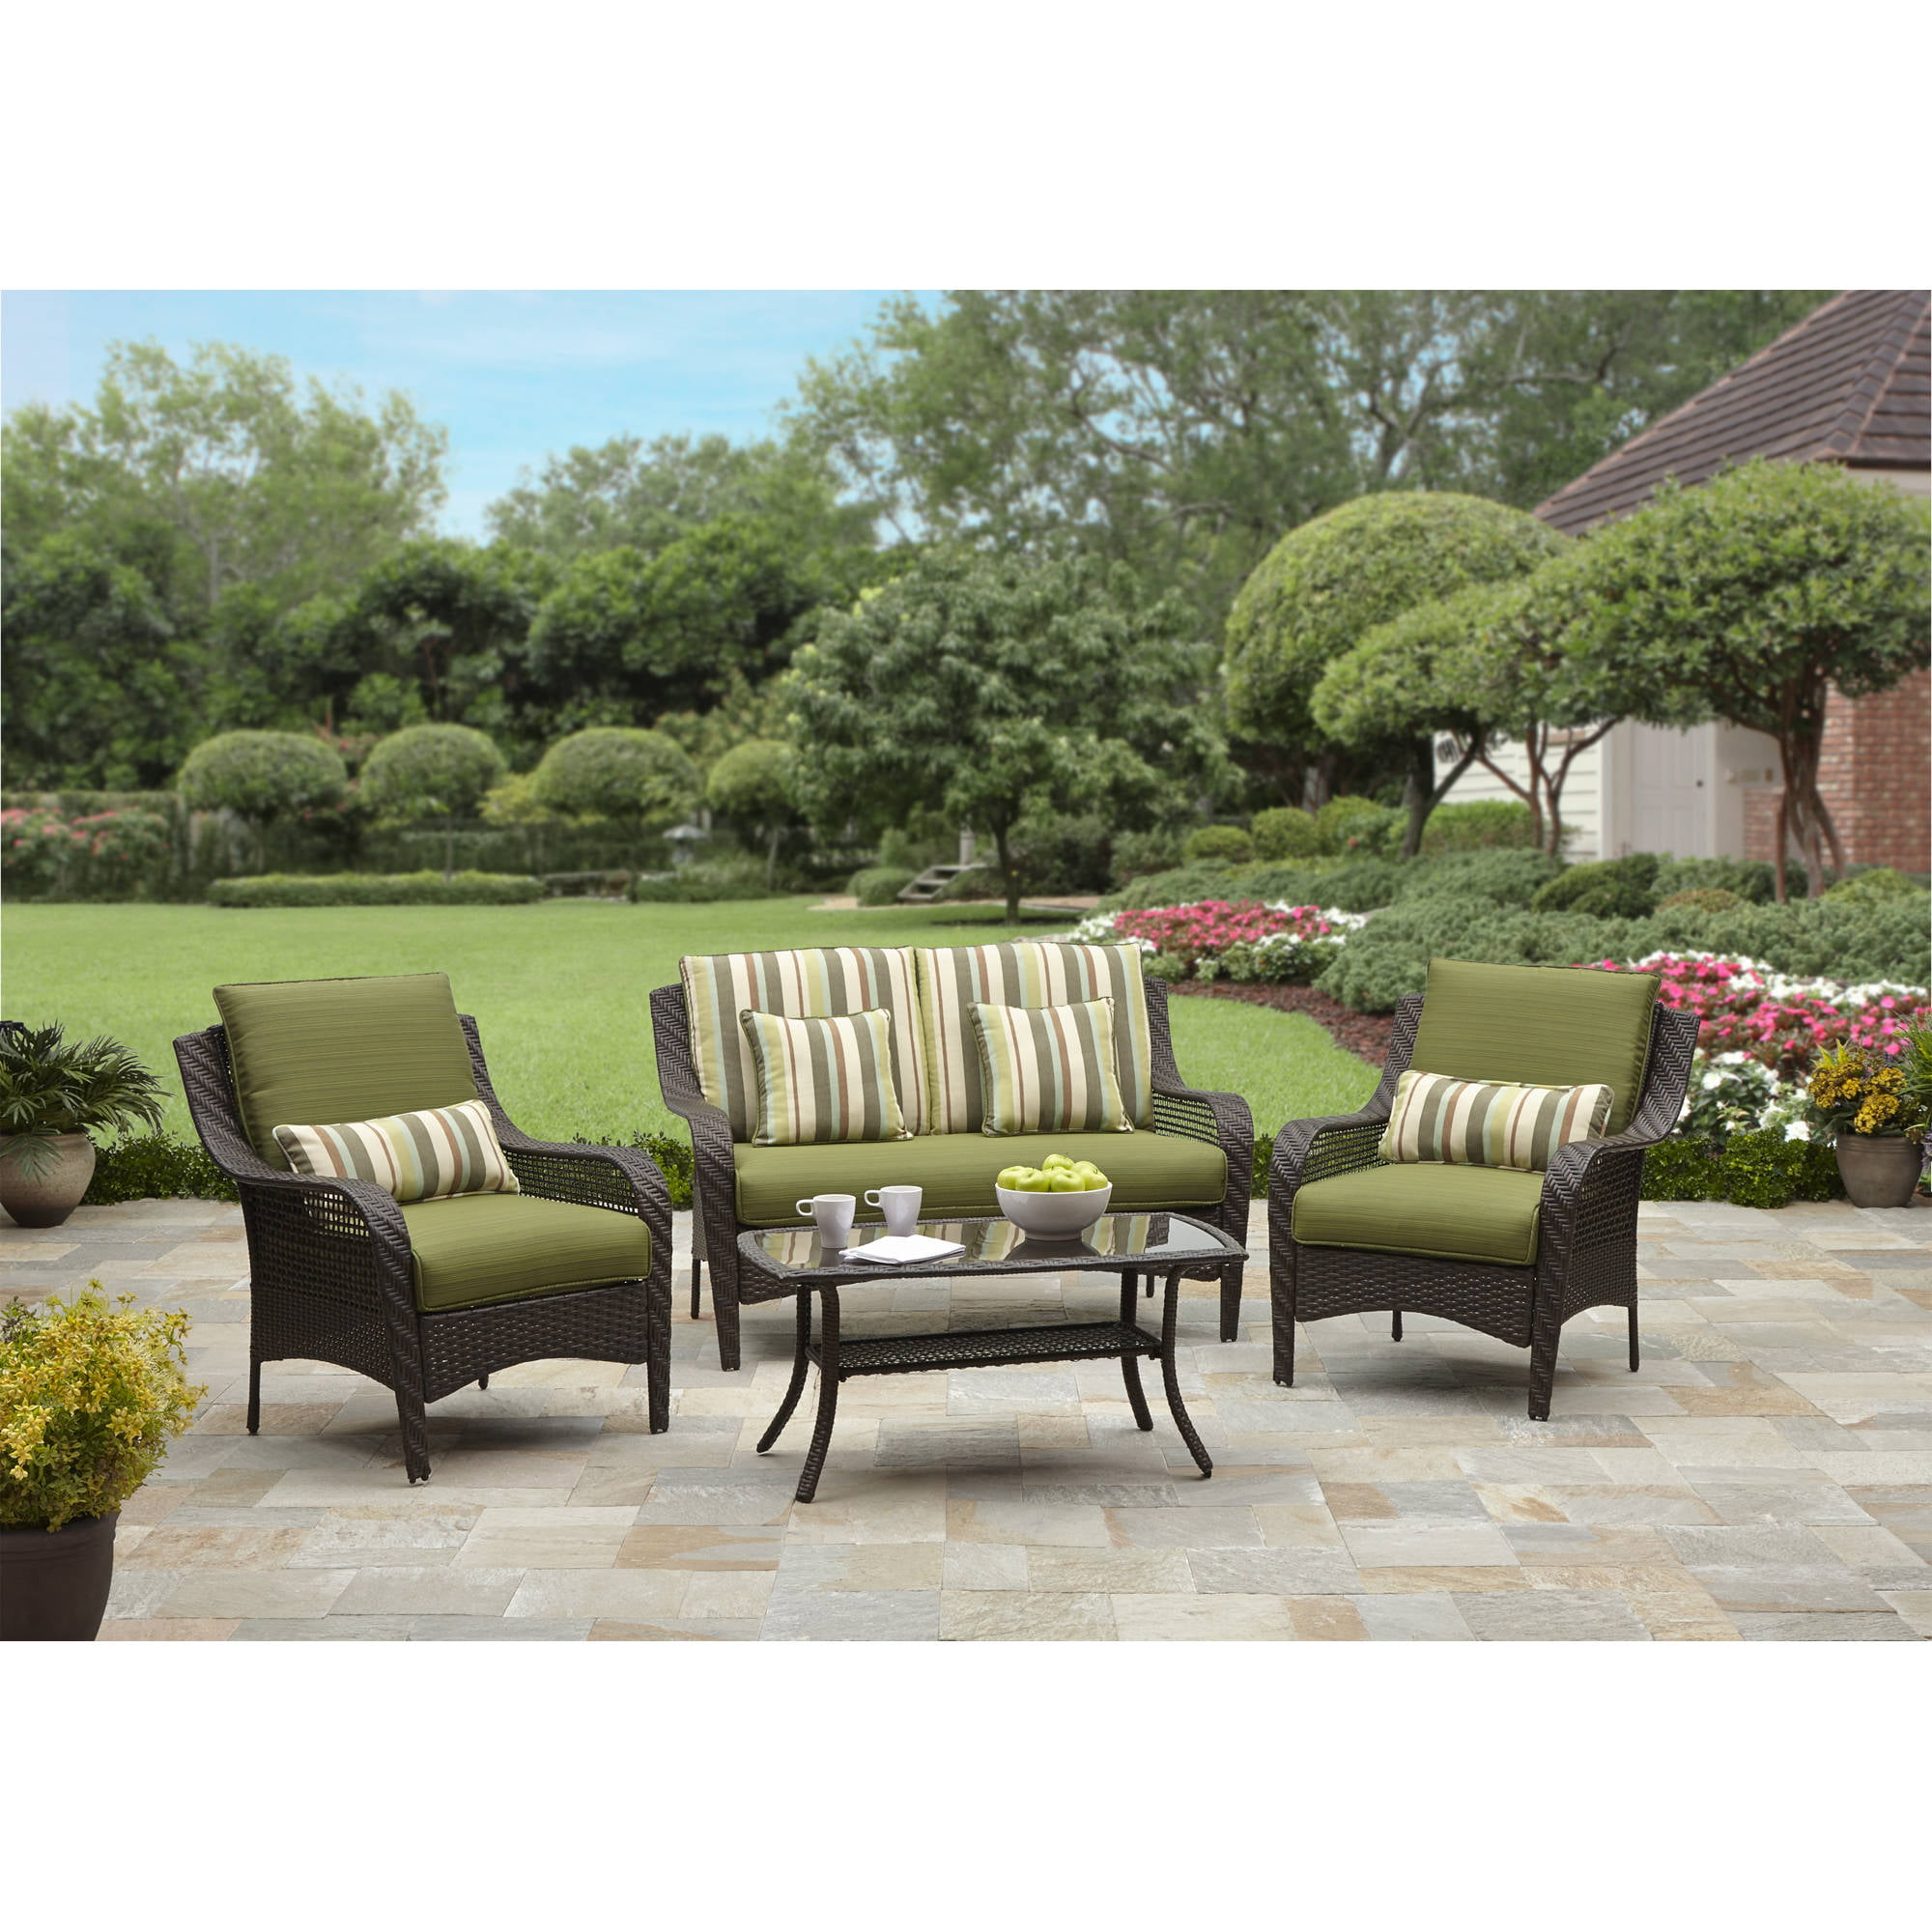 Better Homes And Gardens Amelia Cove 4 Piece Woven Patio Conversation Set,  Seats 4   Walmart.com